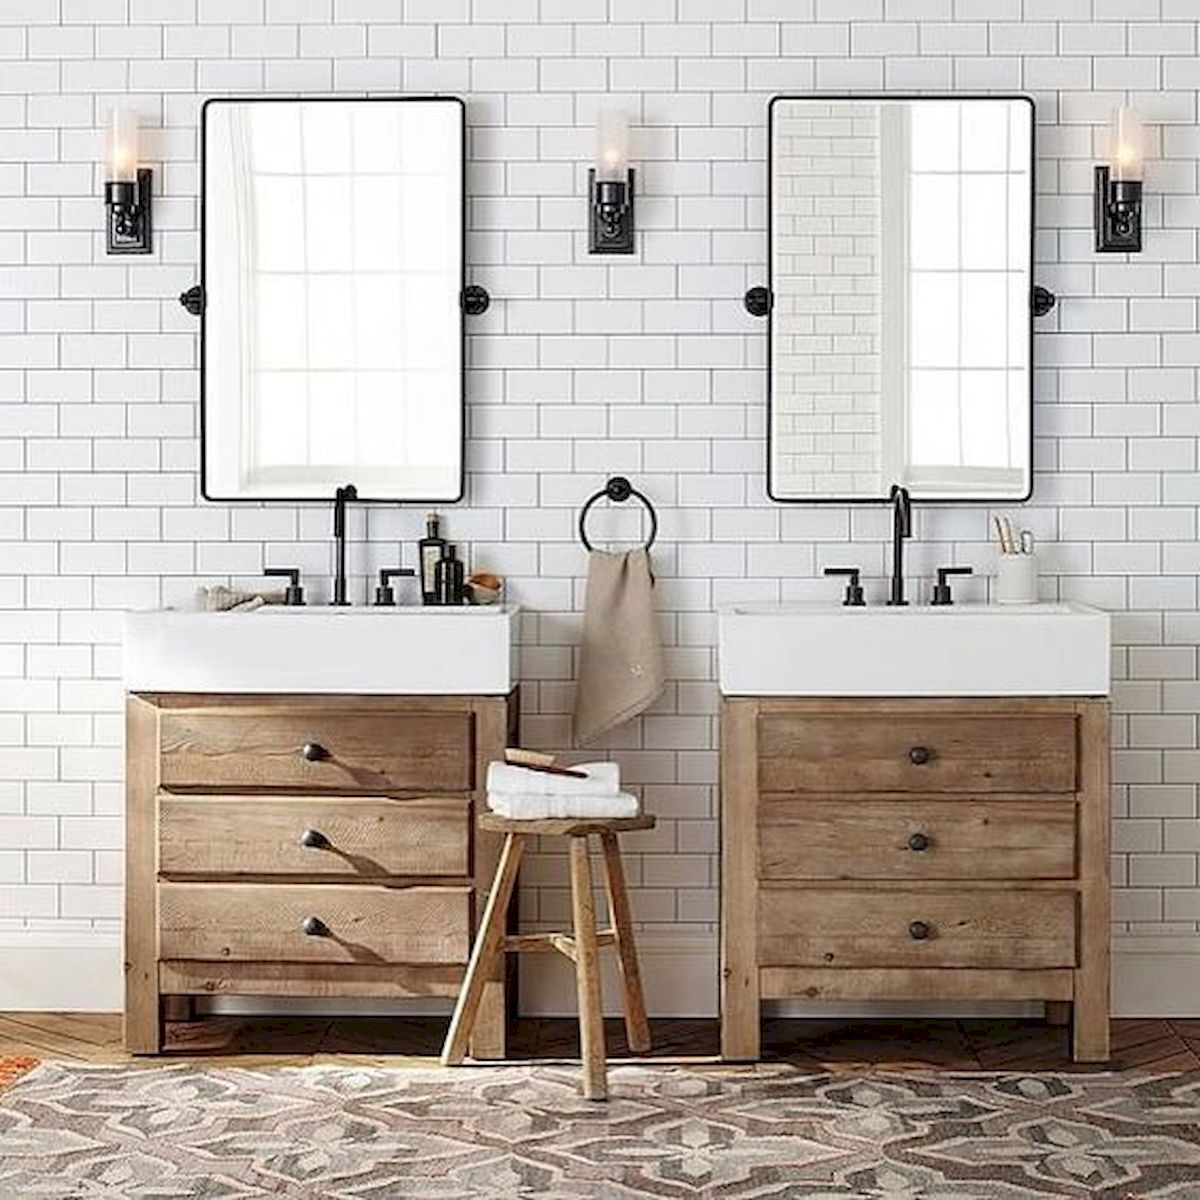 60 Fantastic Farmhouse Bathroom Vanity Decor Ideas And Remodel (20)